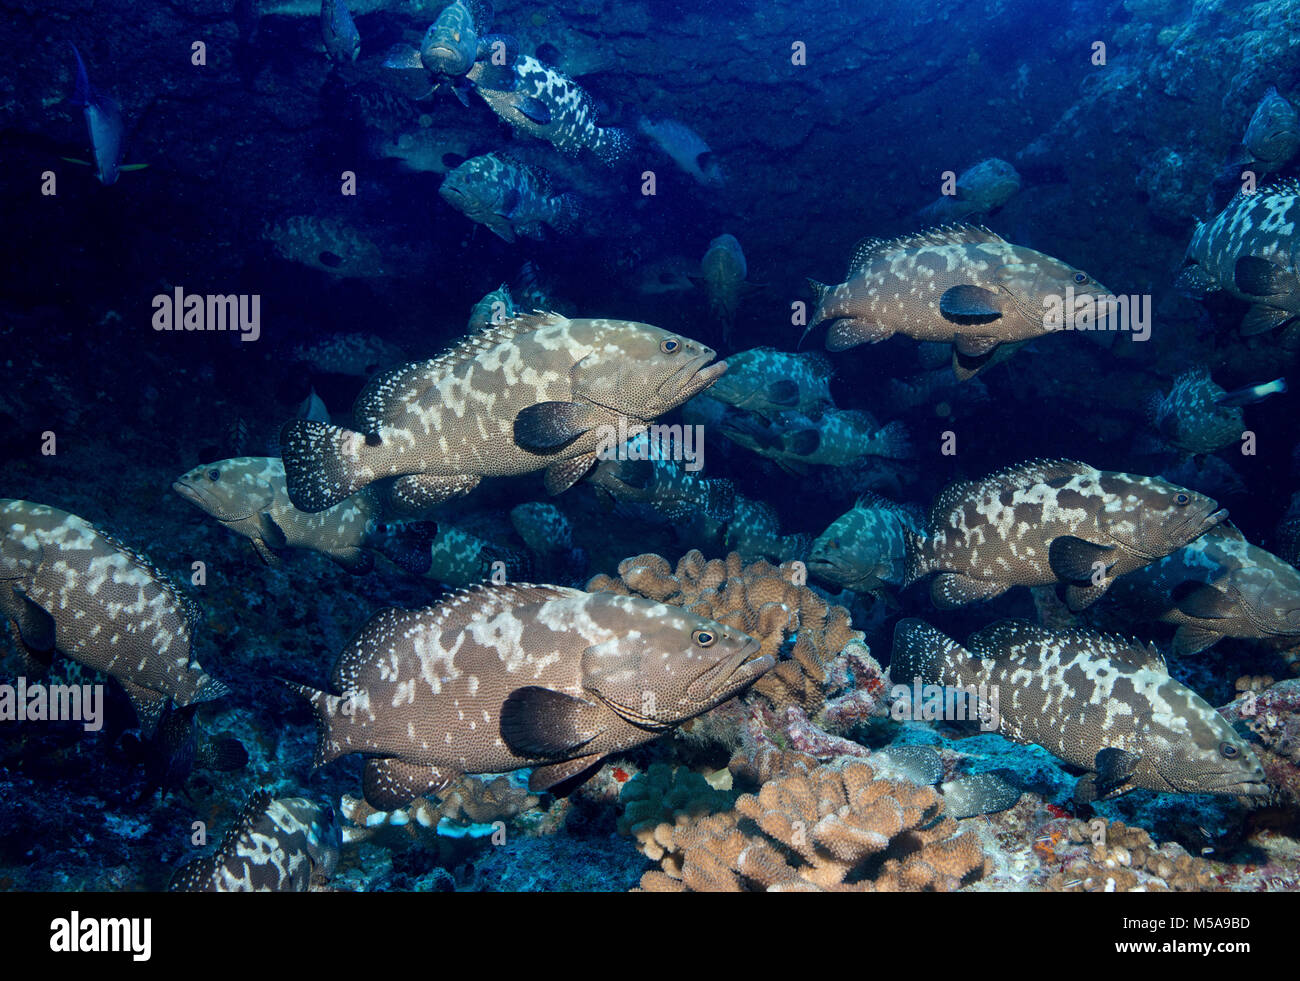 A large school of grouper fish spawning in a pass between islands, French Polynesia. - Stock Image